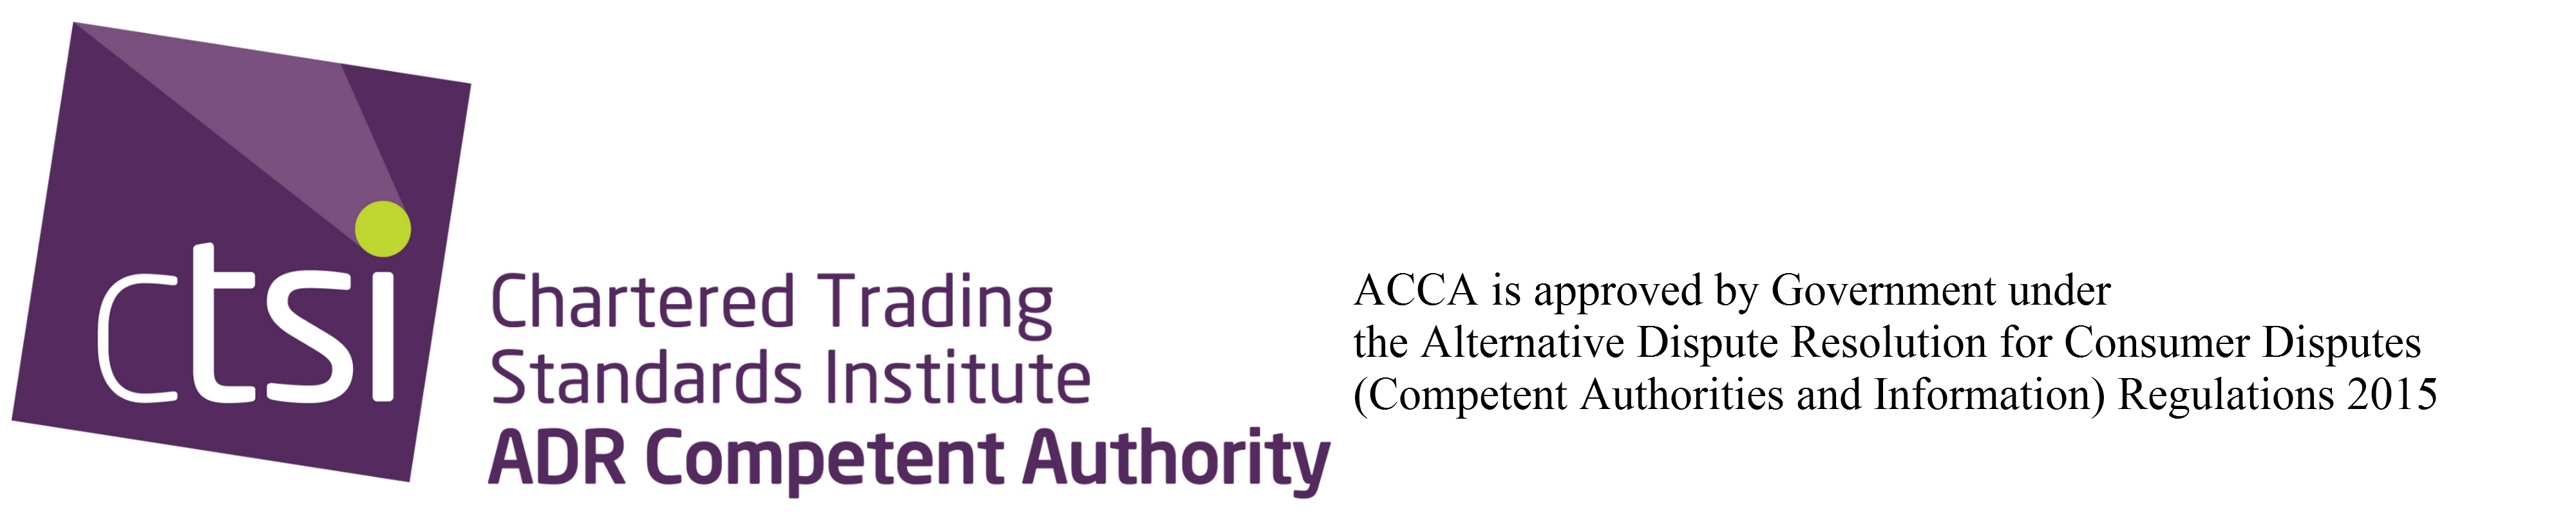 ACCA is approved by Government under the Alternative Dispute Resolution for Consumer Disputes (Competent Authorities and Information) Regulations 2015